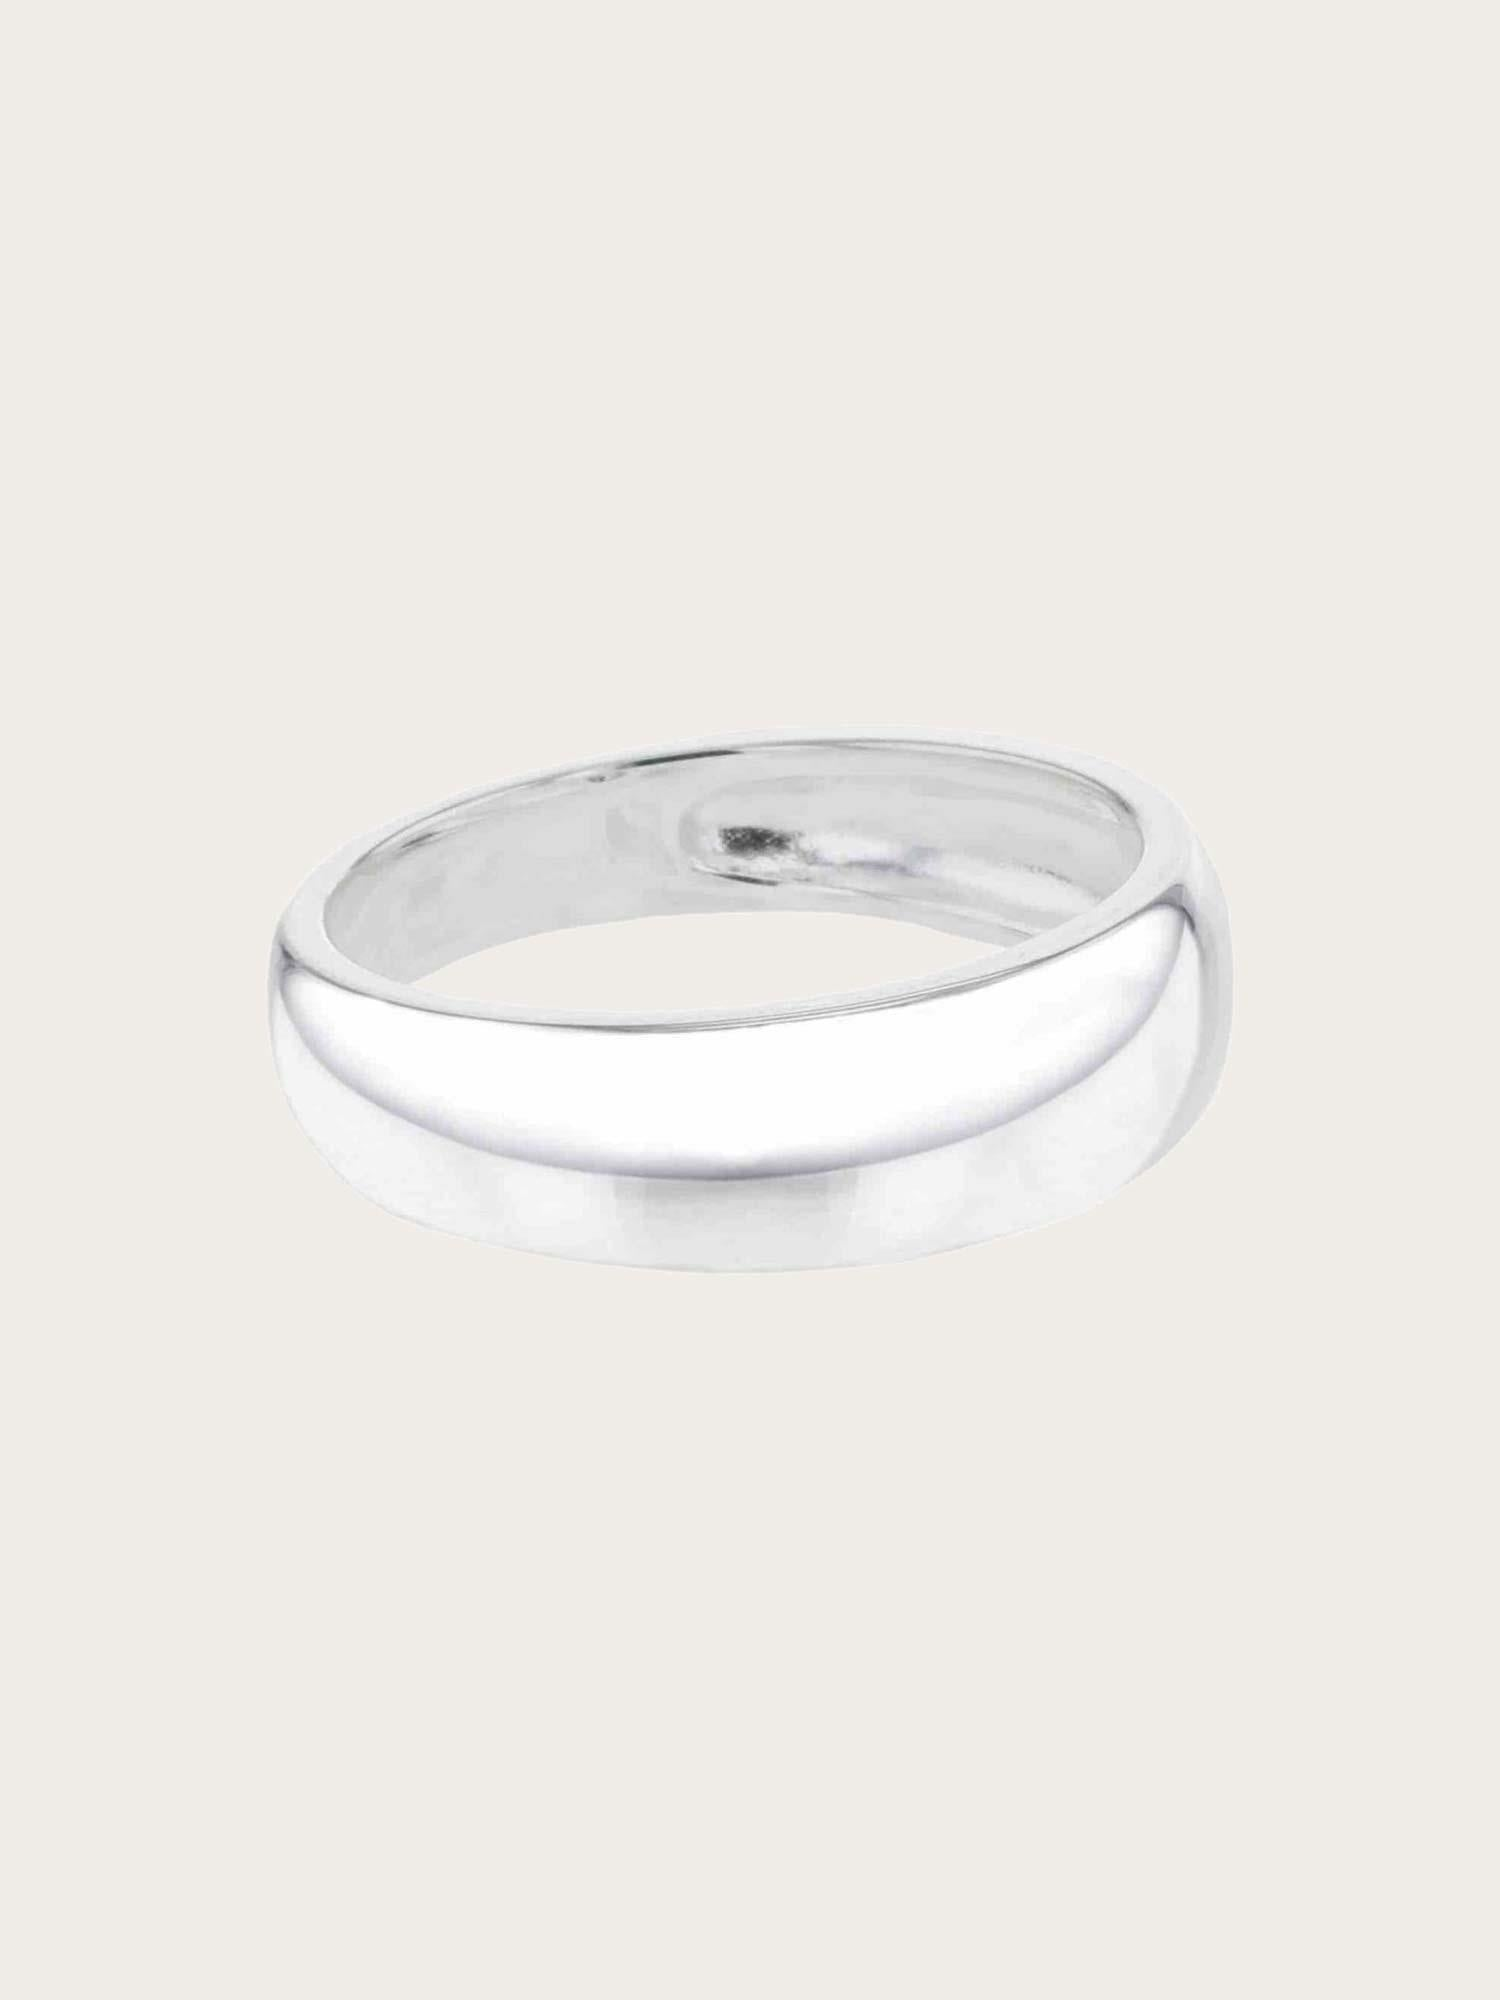 Elements - Classical Perspective Ring Silver